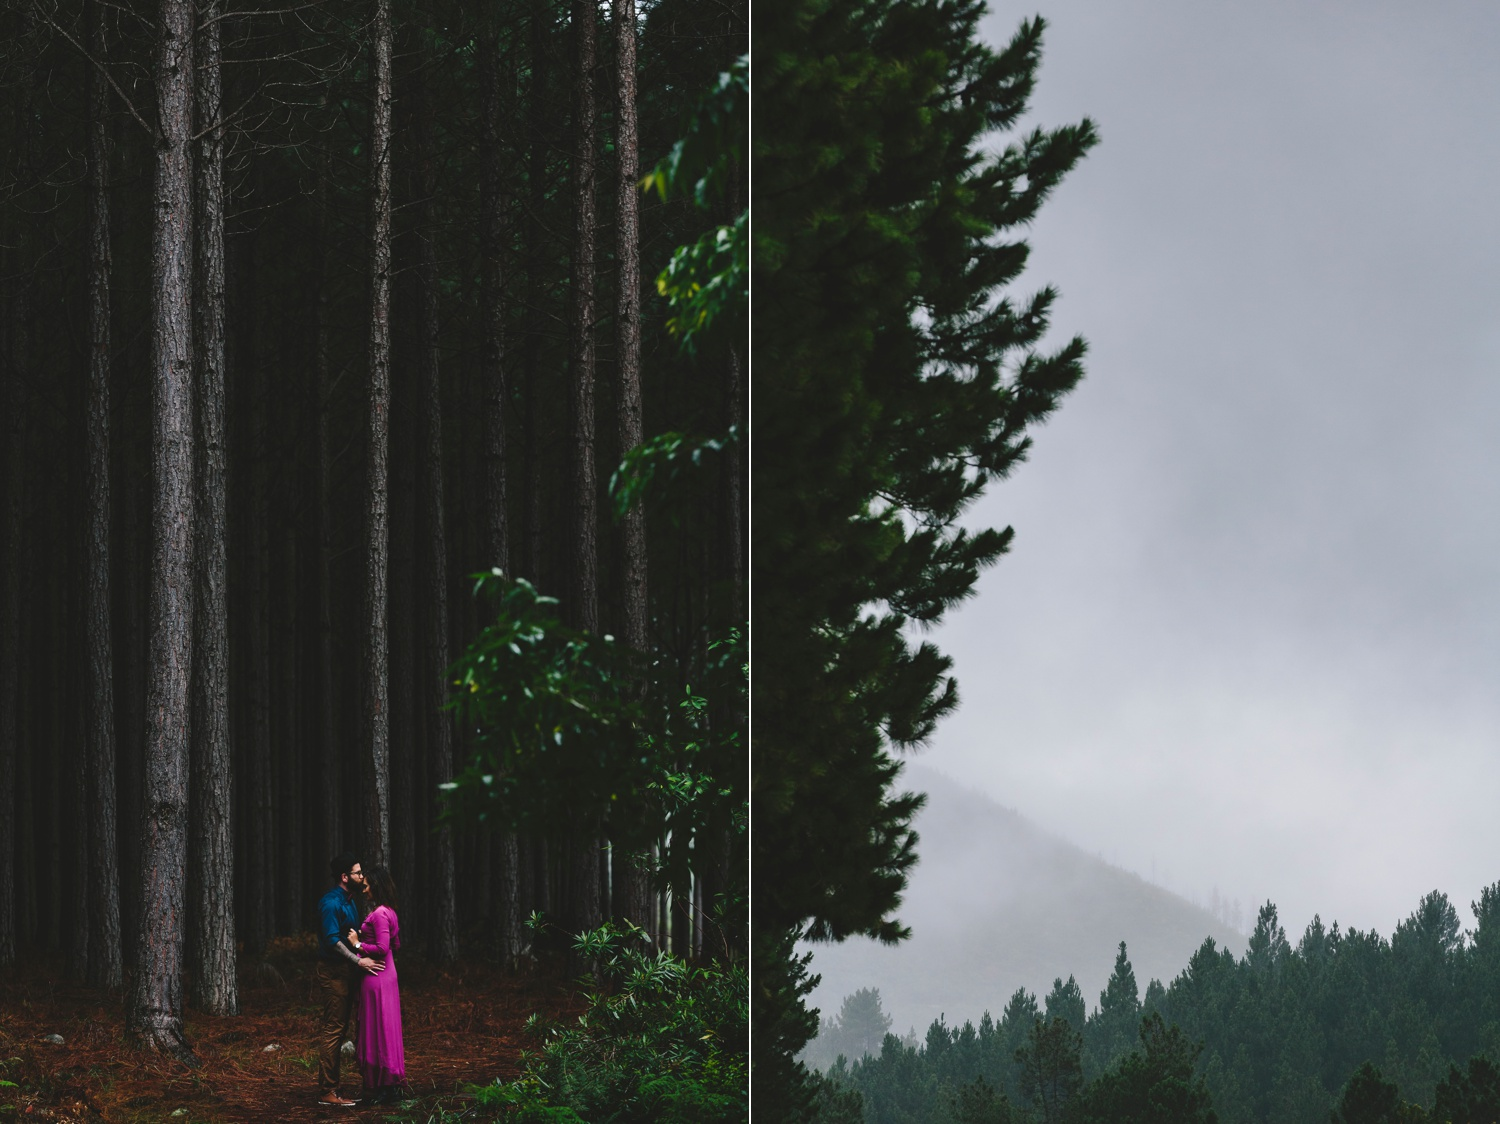 western_cape_tsitsikamma_storms_river_forest_ferns_stormy_couple_session_0719.jpg